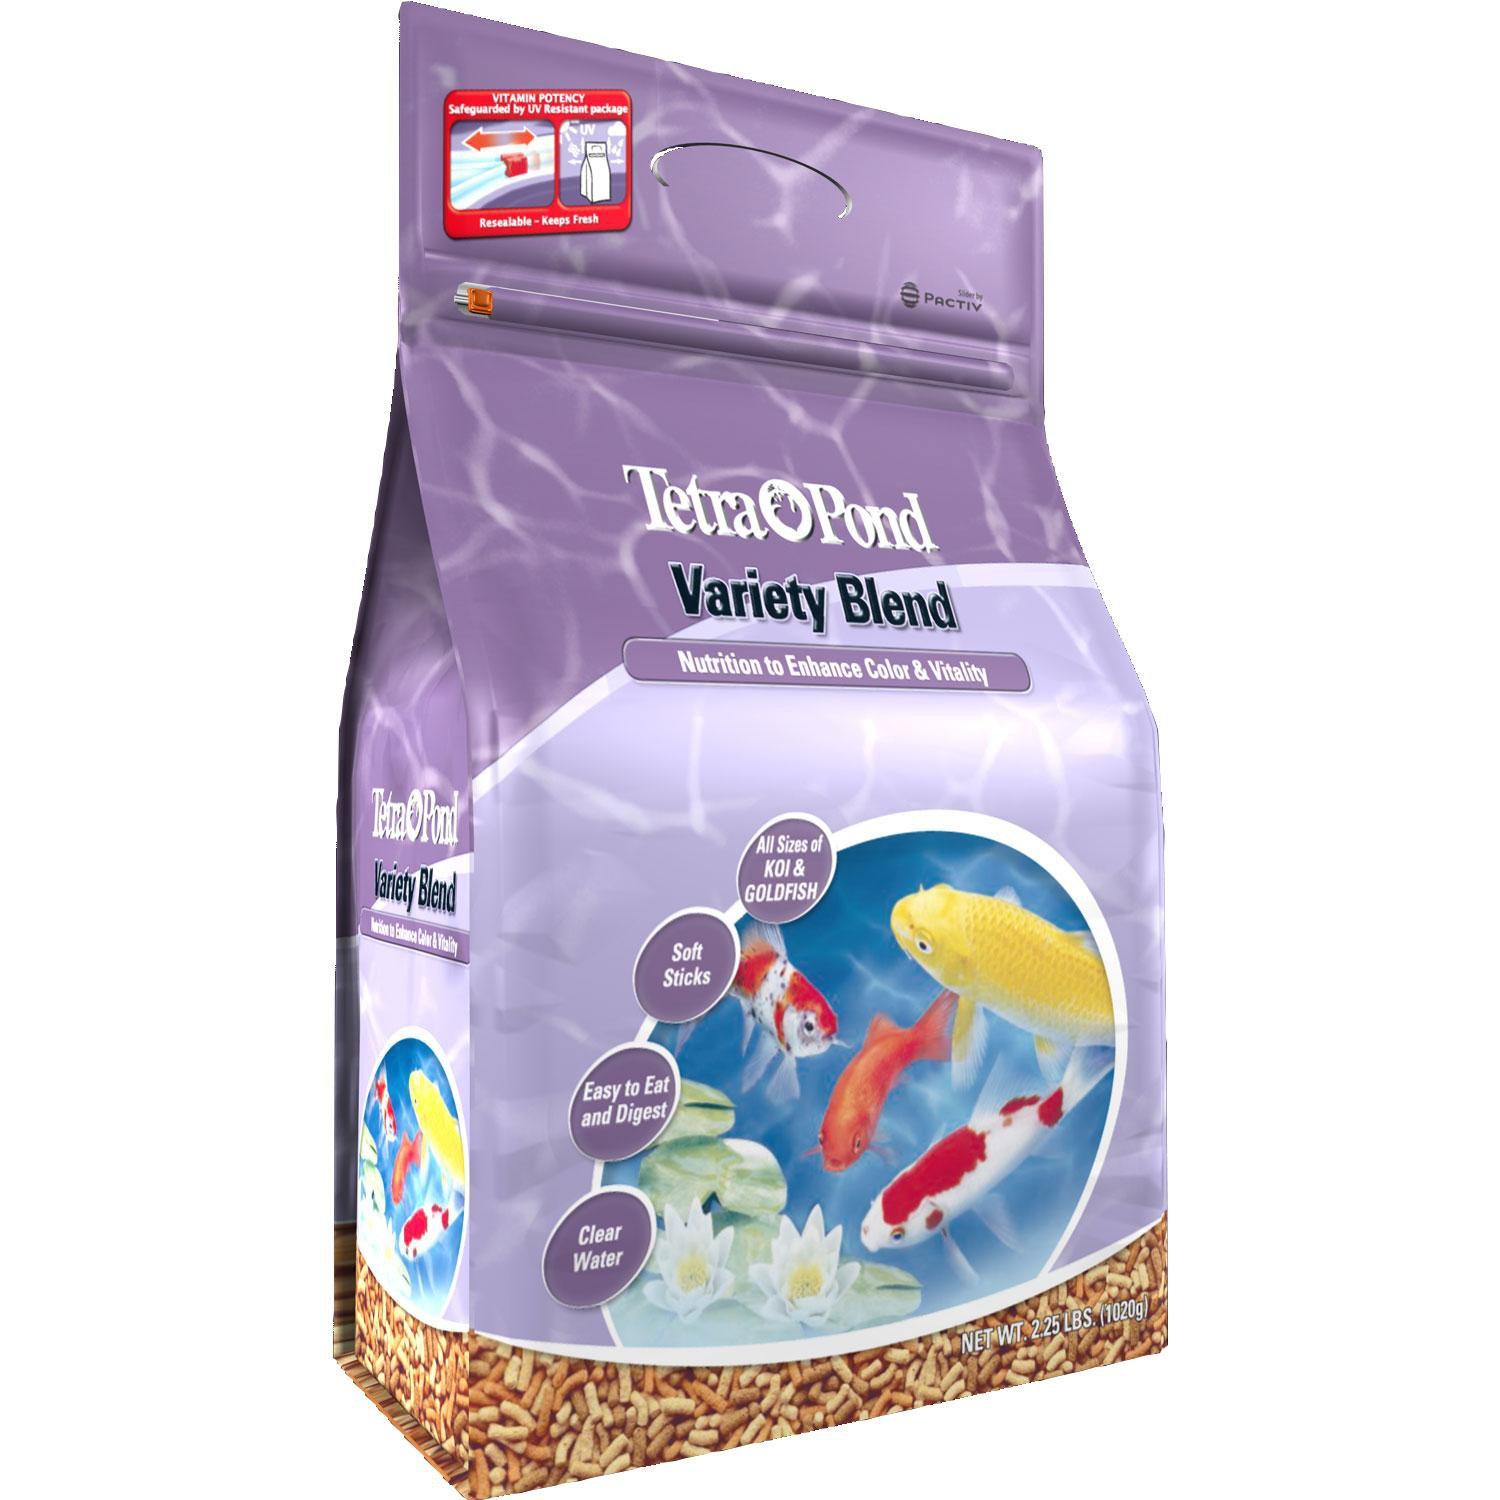 TetraPond Variety Blend Pond Fish Food